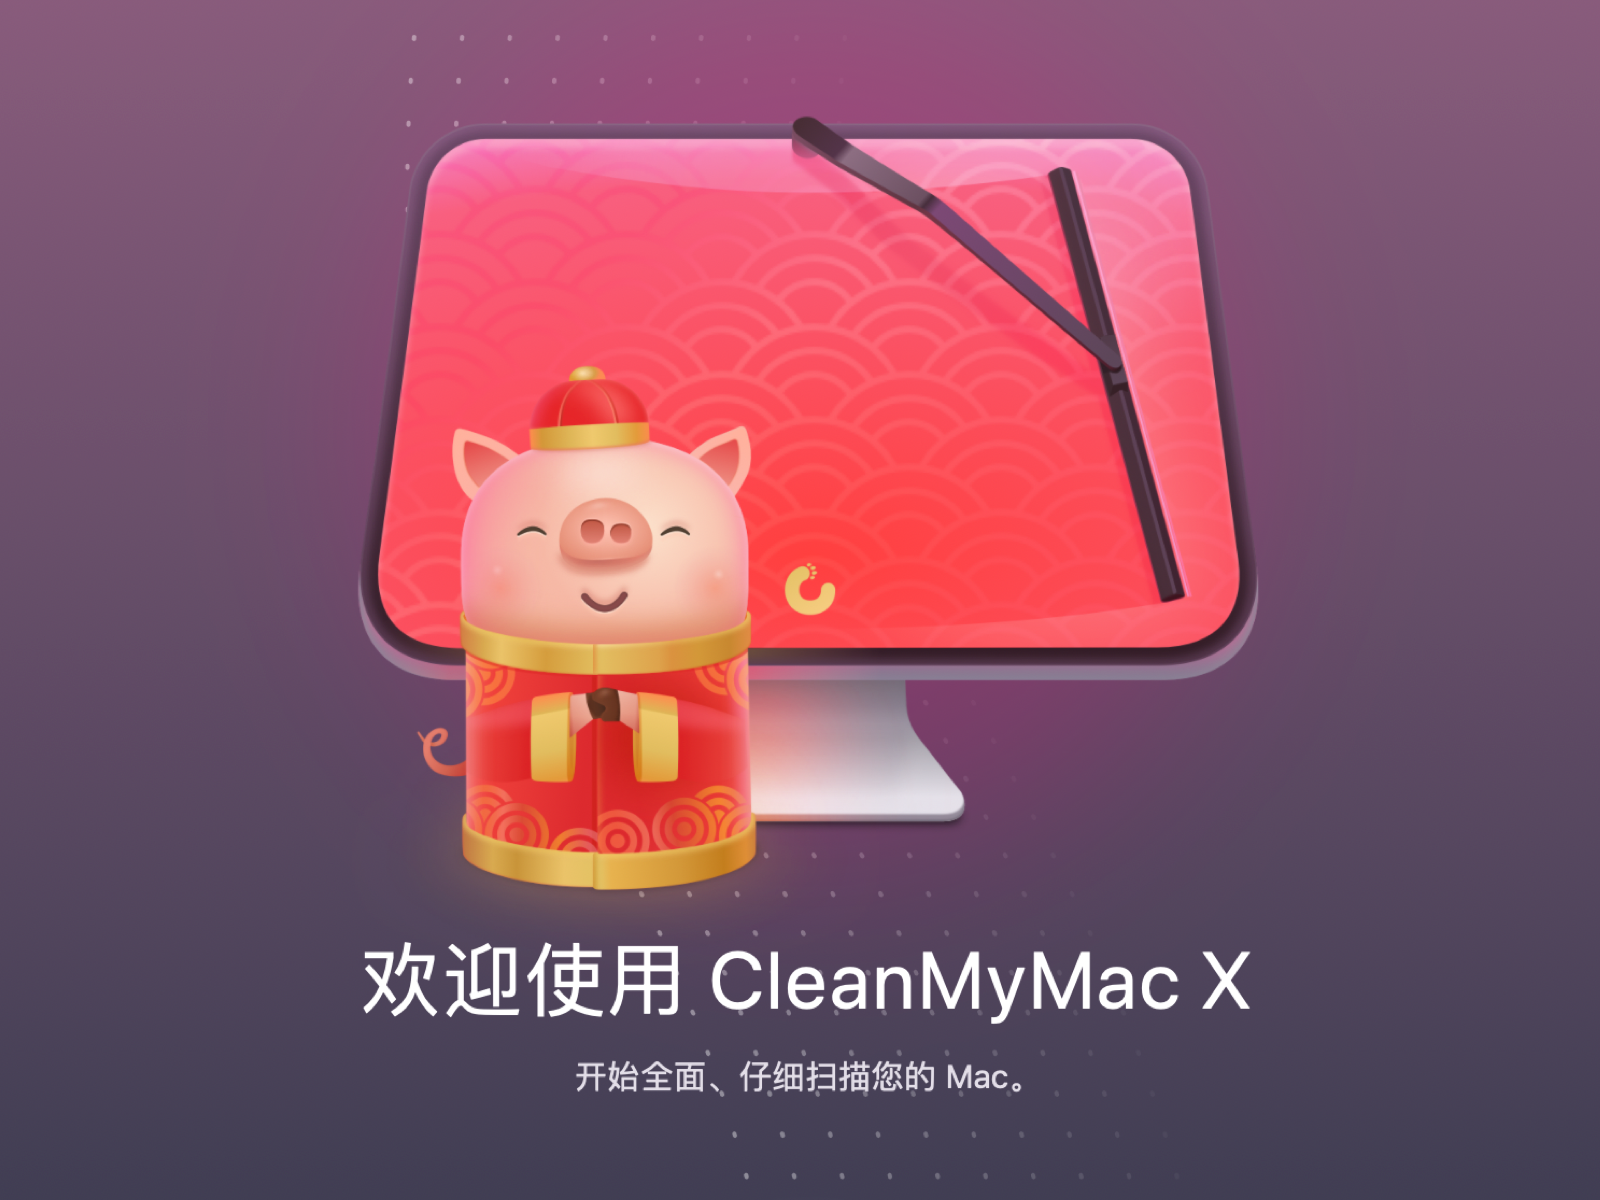 Cleanmymac x  hinese new year